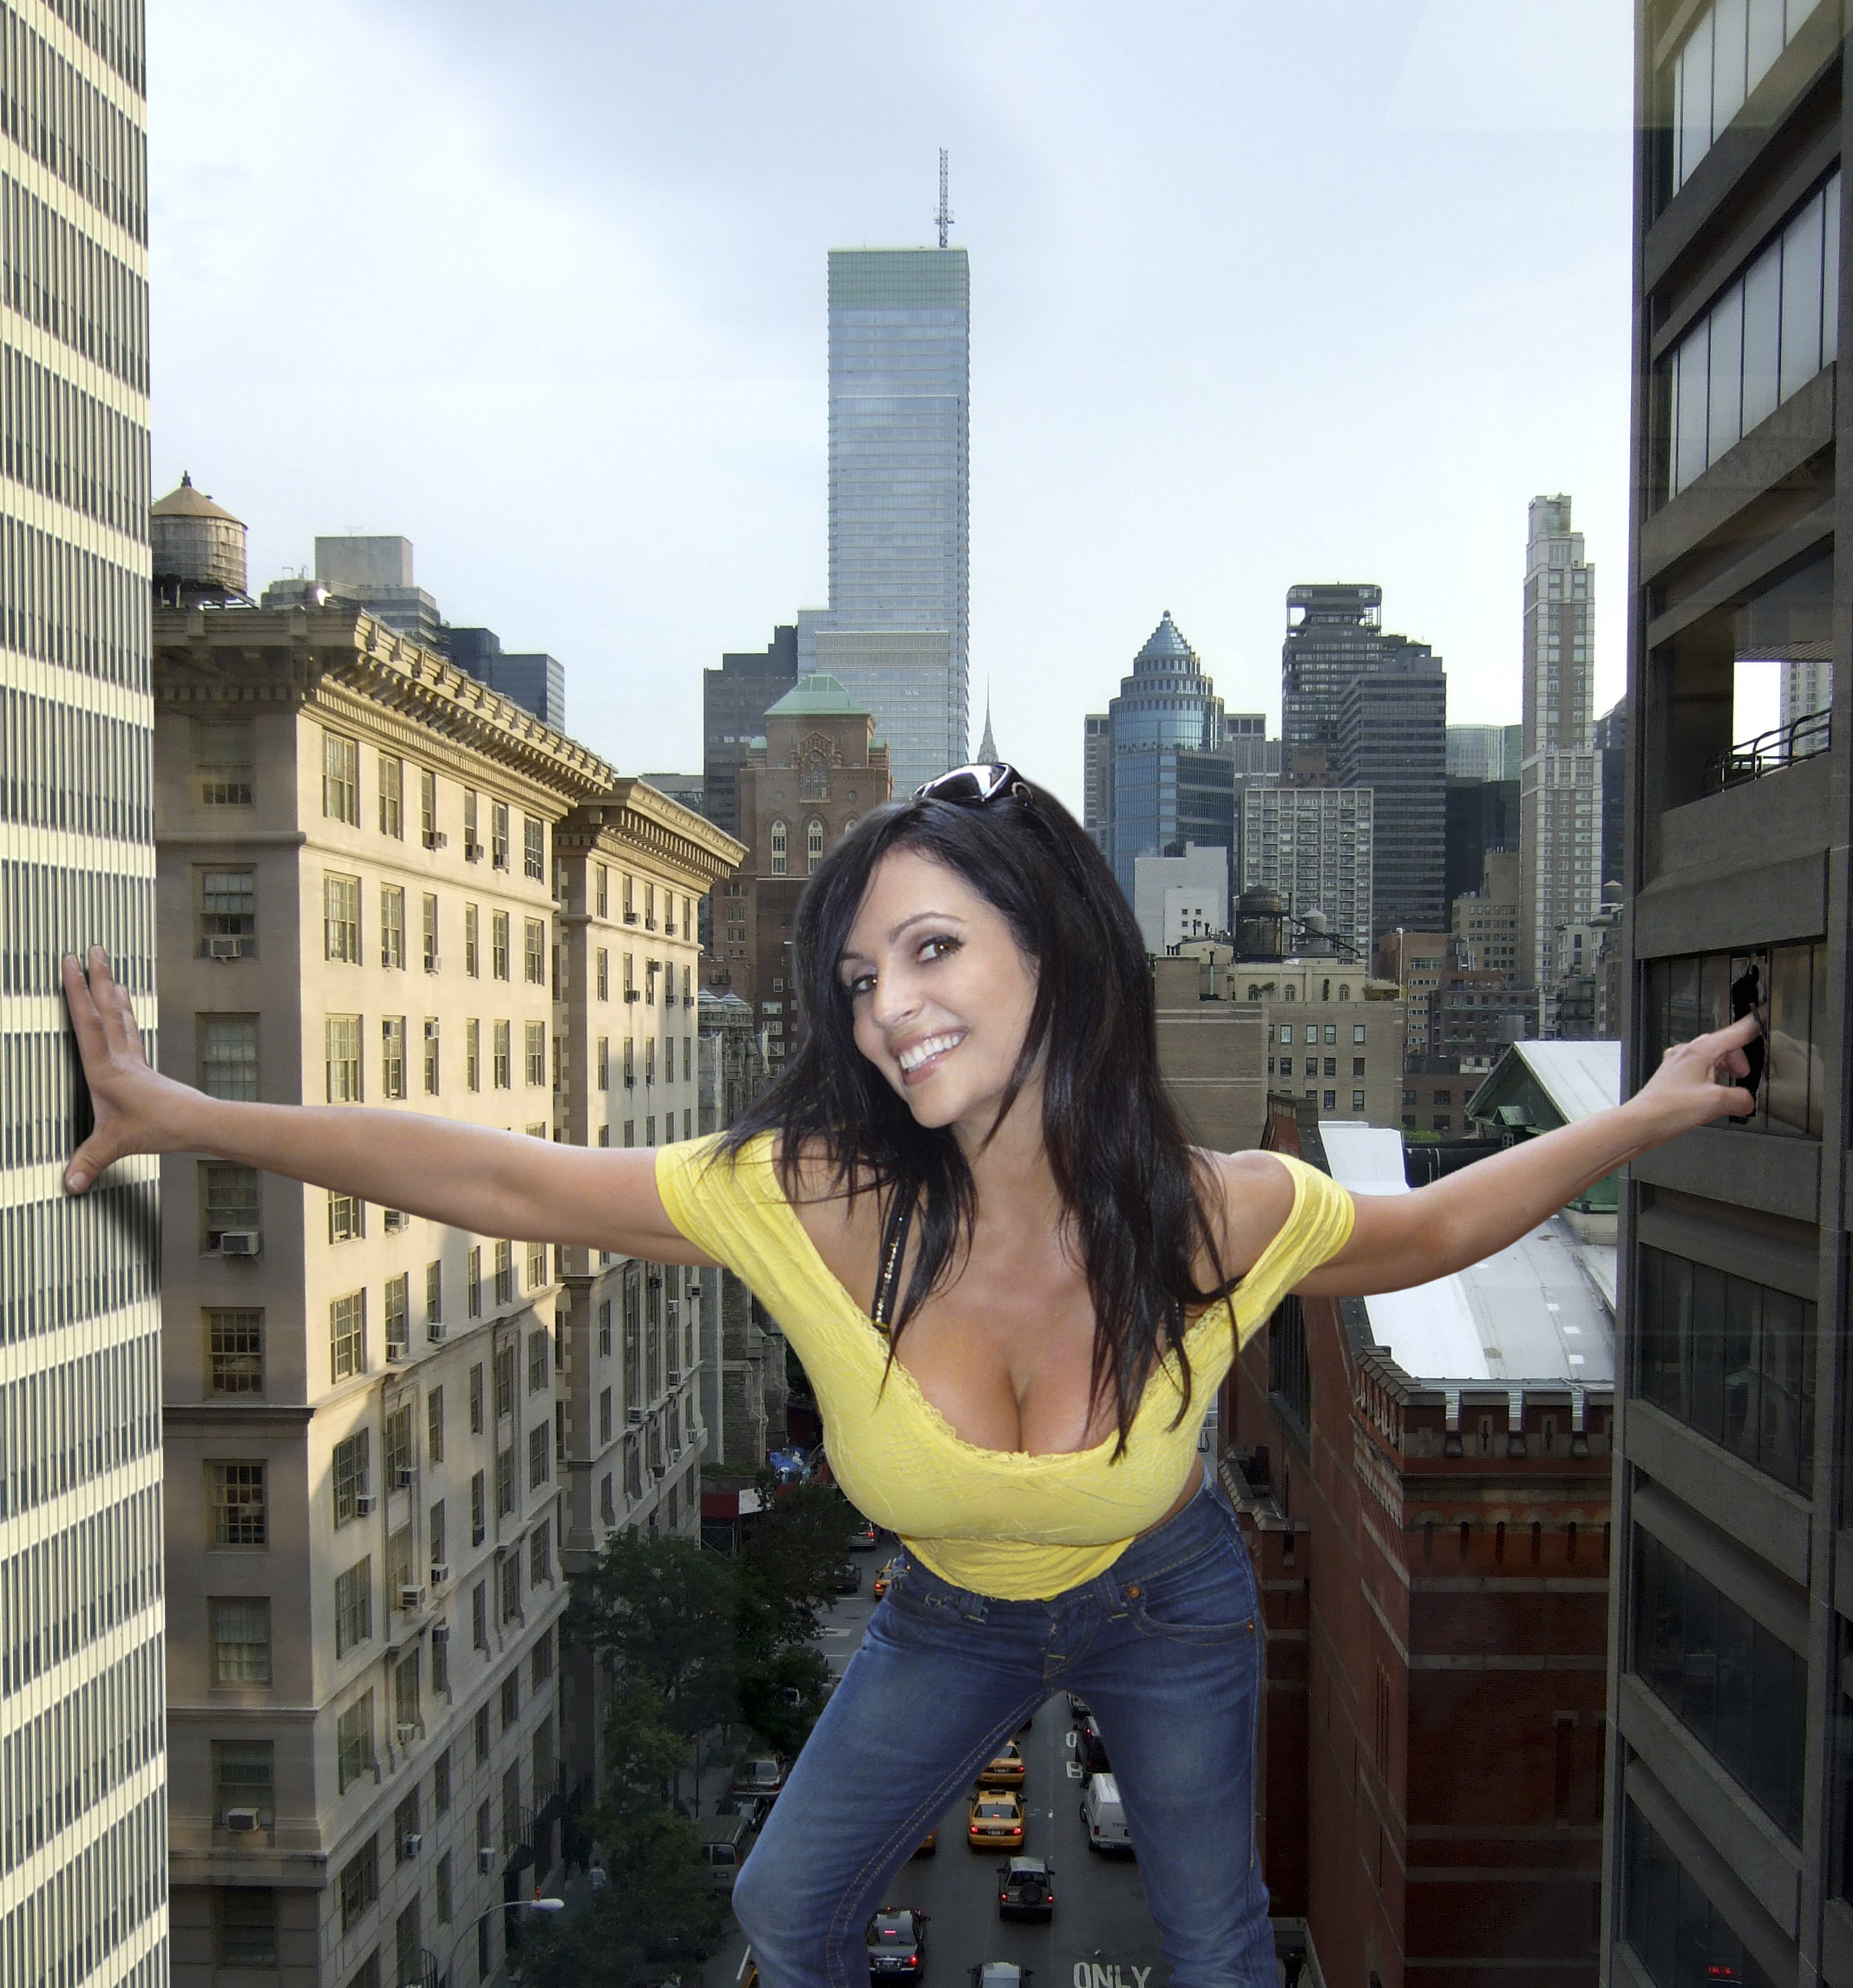 160003 - between_buildings broken_window cars city cleavage clothed collage denise_milani giantess hole looking_at_viewer skyscrapers smile street wonderslug